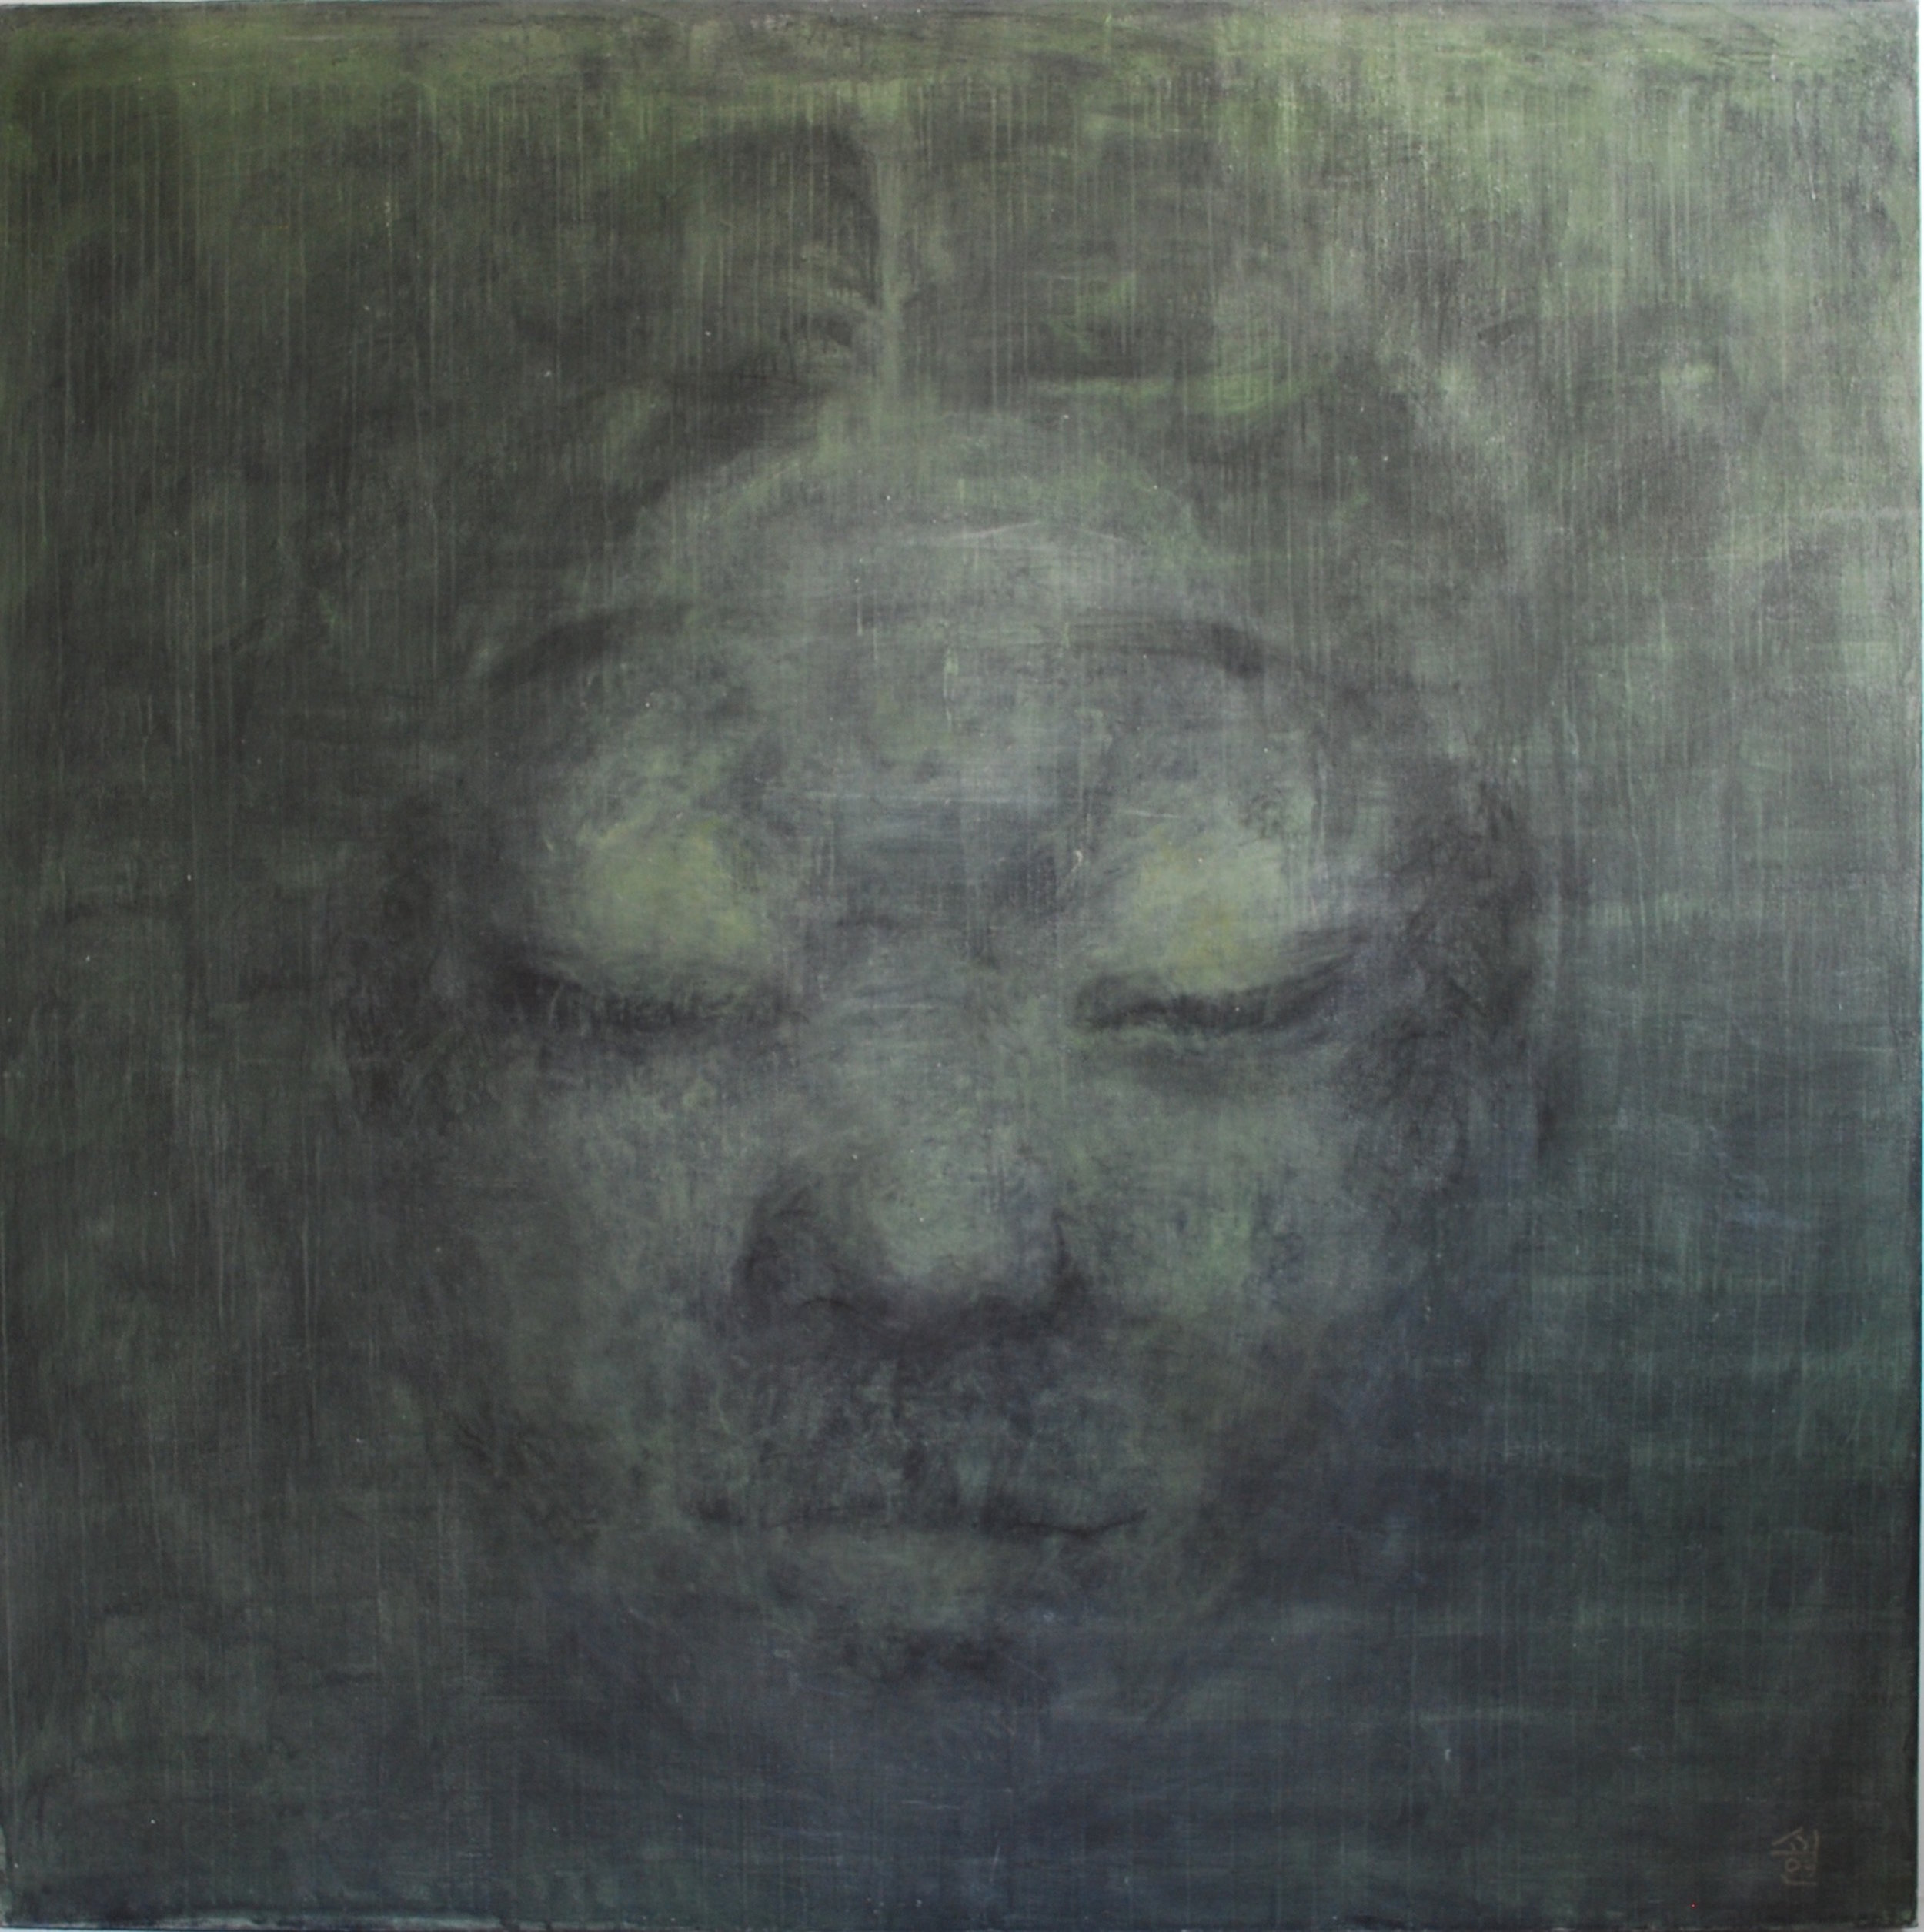 SoHyun Bae, A Woman of Josun Dynasty: Colossal Head II, 1998, charcoal, pure pigment on canvas, 81 x 81 inches